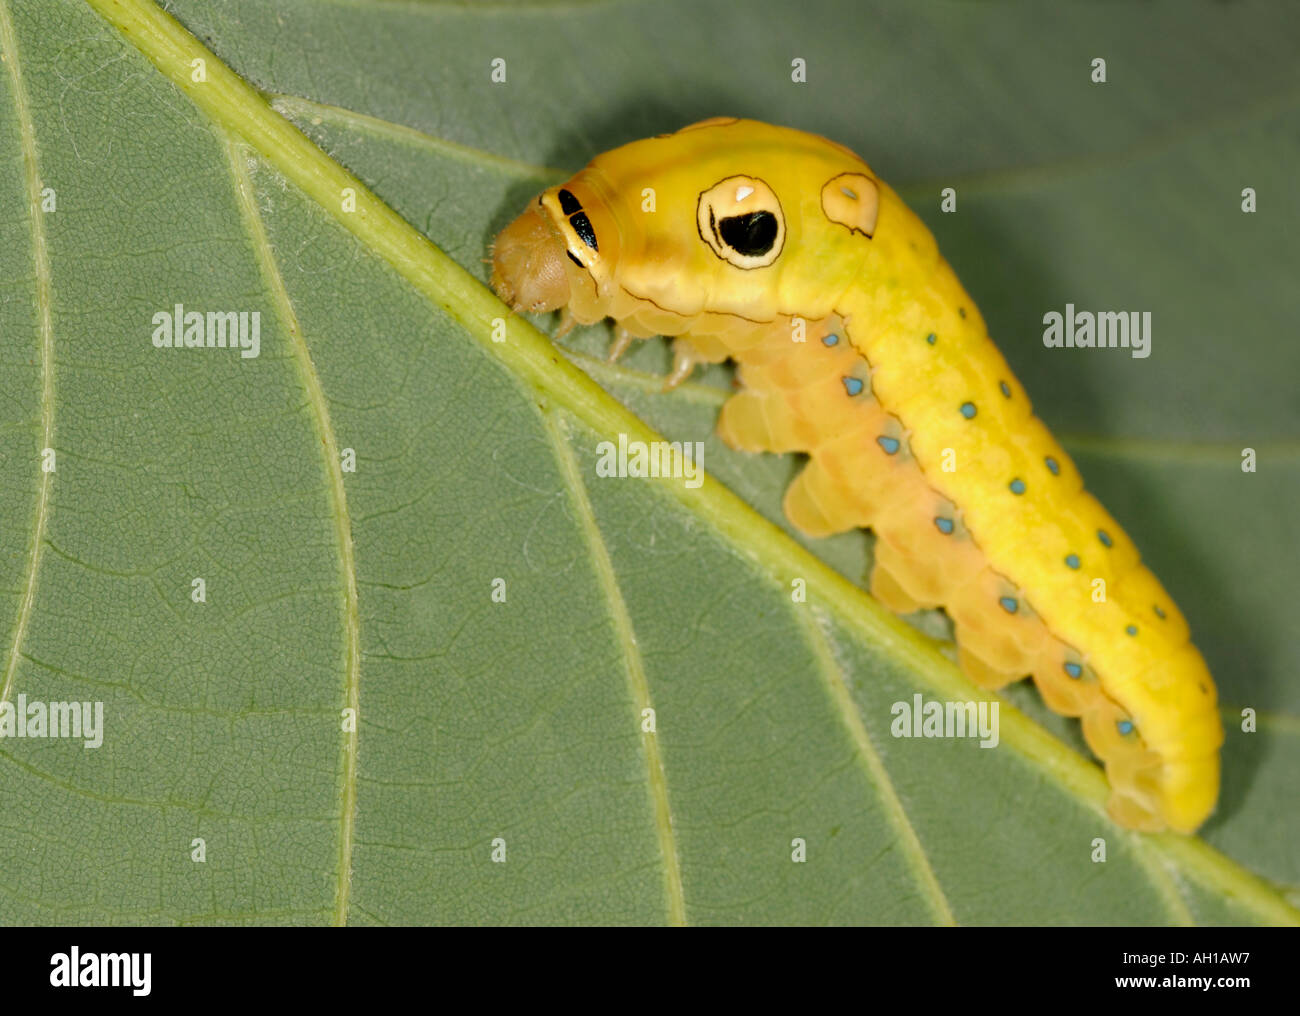 Spicebush Swallowtail, Papilio troilus, caterpillar in final prepupal instar.  Snake mimic with fake eye-spots - Stock Image